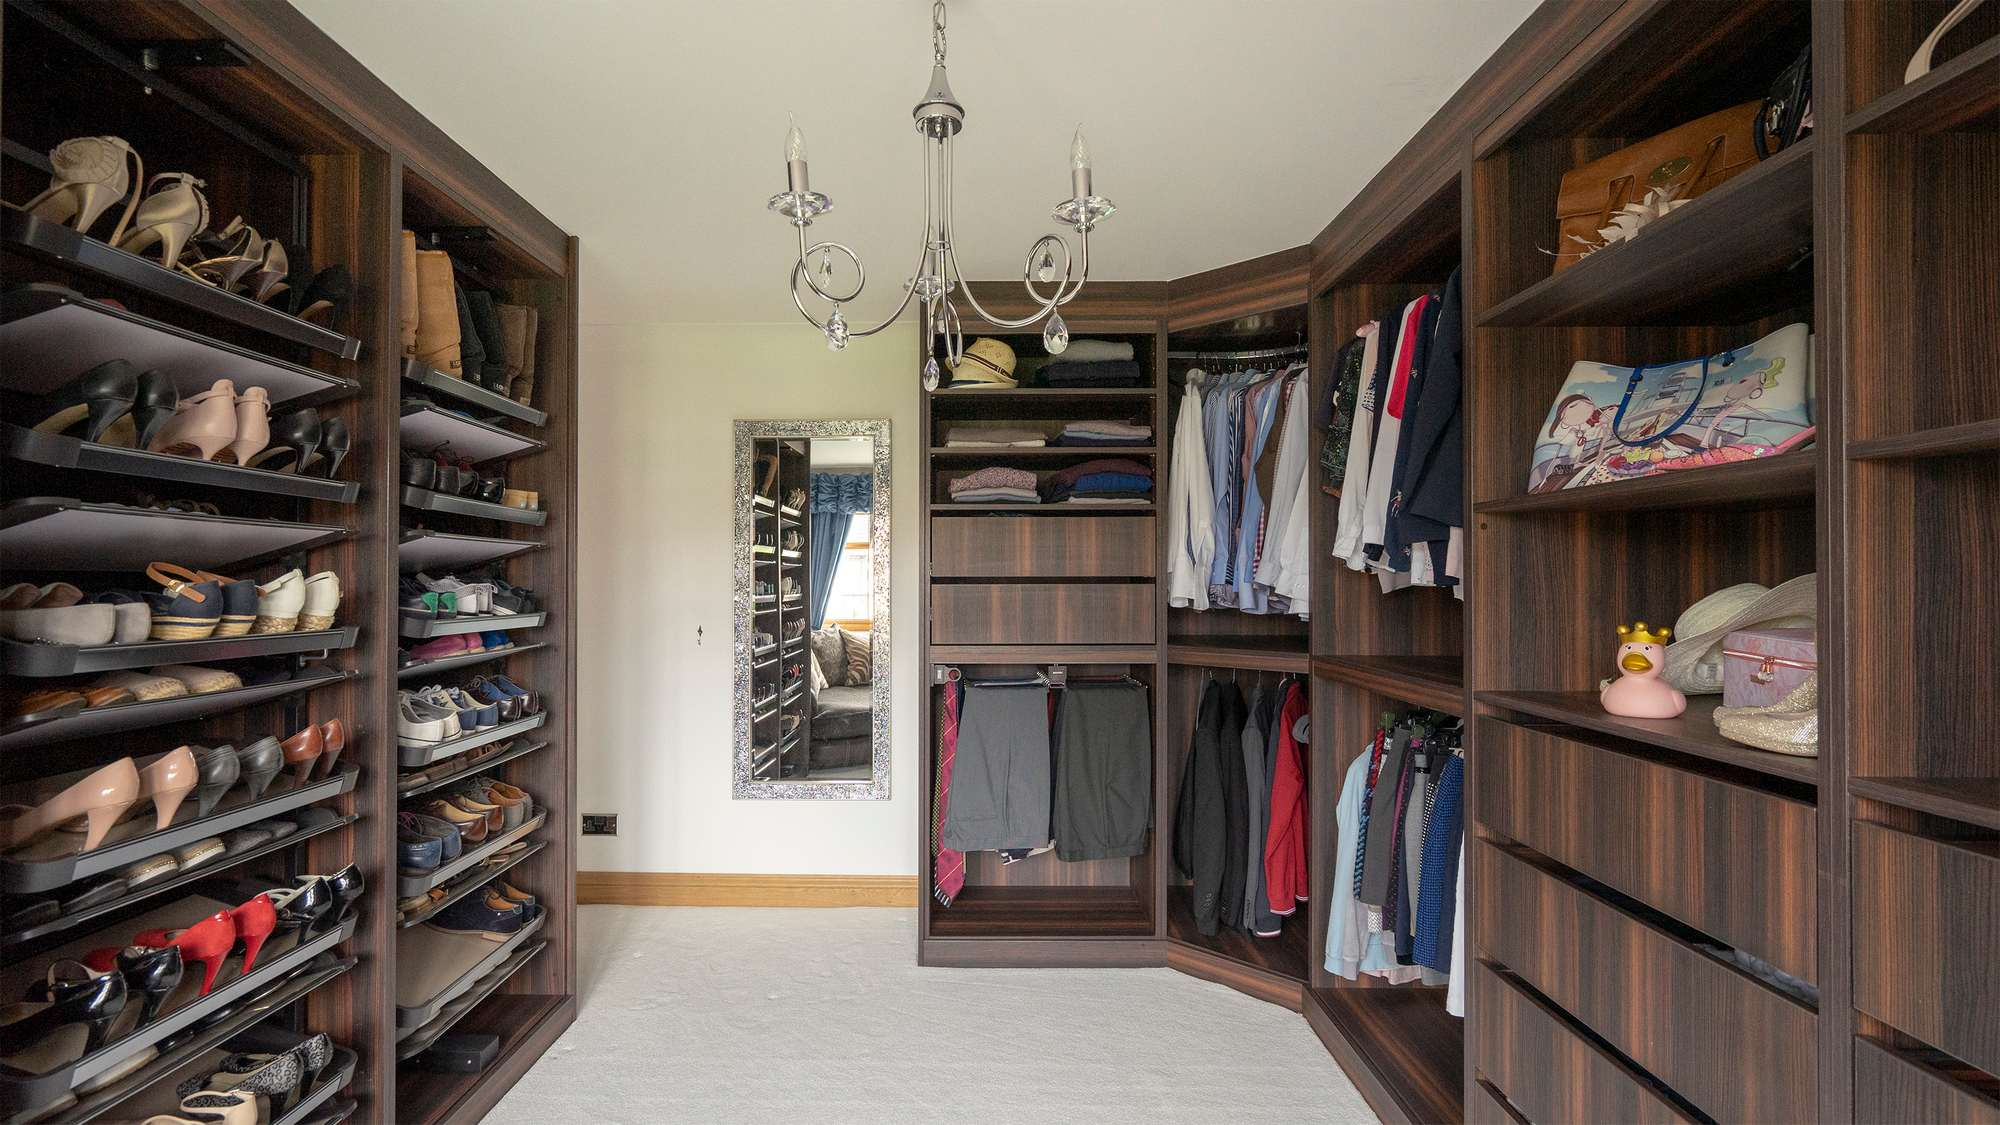 Image showing most of the walk-in wardrobe with the rotating shoe racks on the left side and clothes storage on the right.